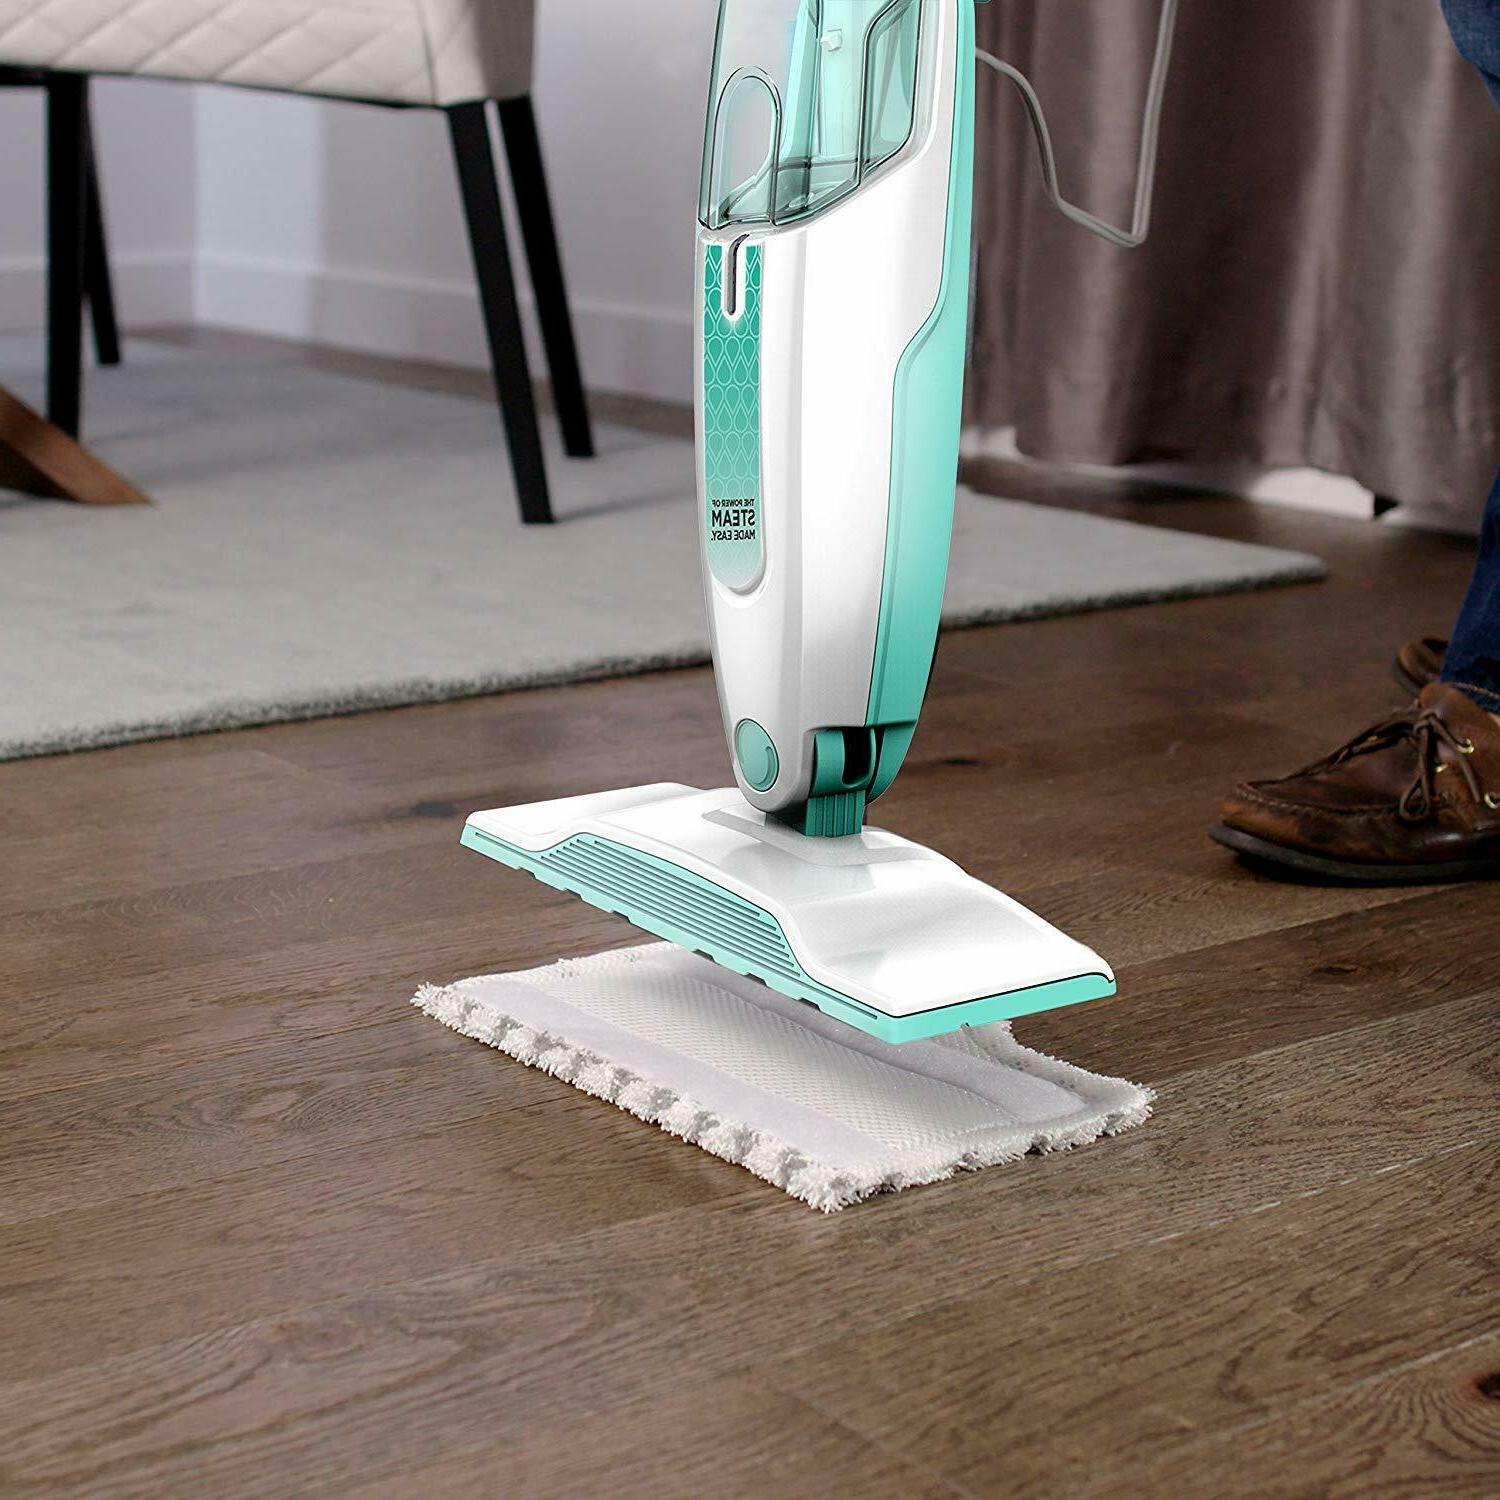 Shark Hard Floor Cleaner w/ Tank